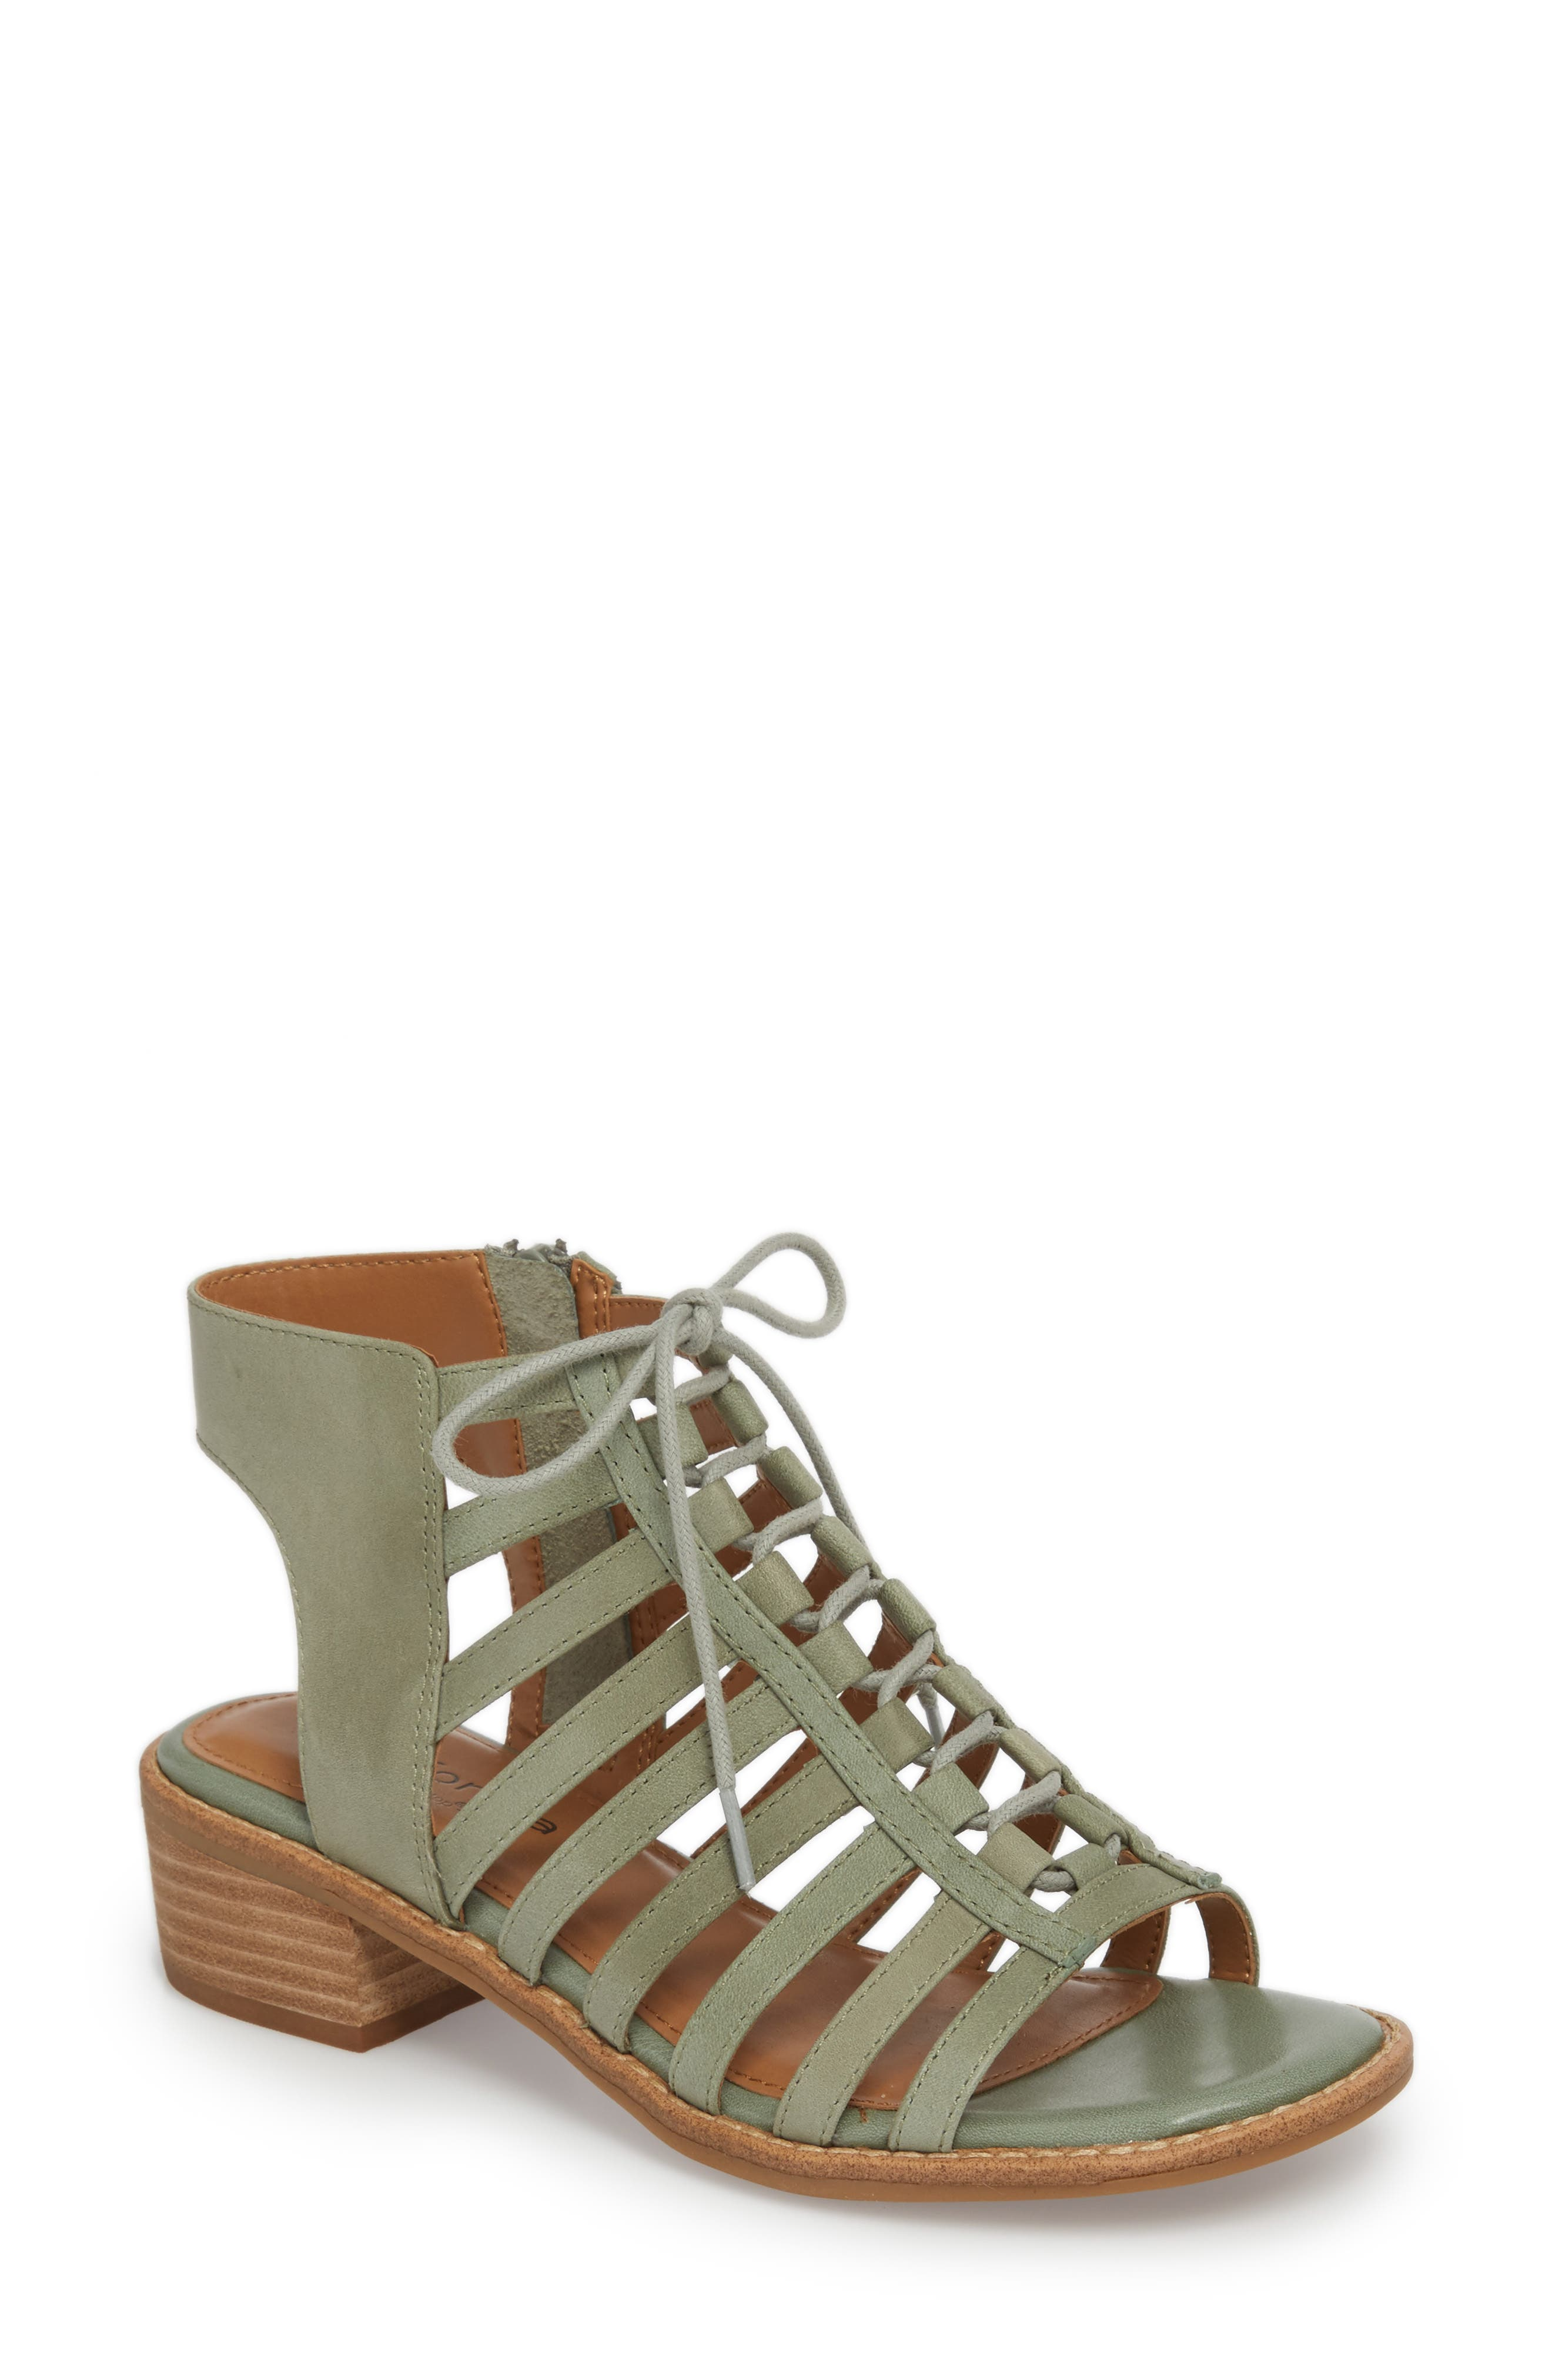 Blossom Sandal,                             Main thumbnail 1, color,                             SAGE LEATHER